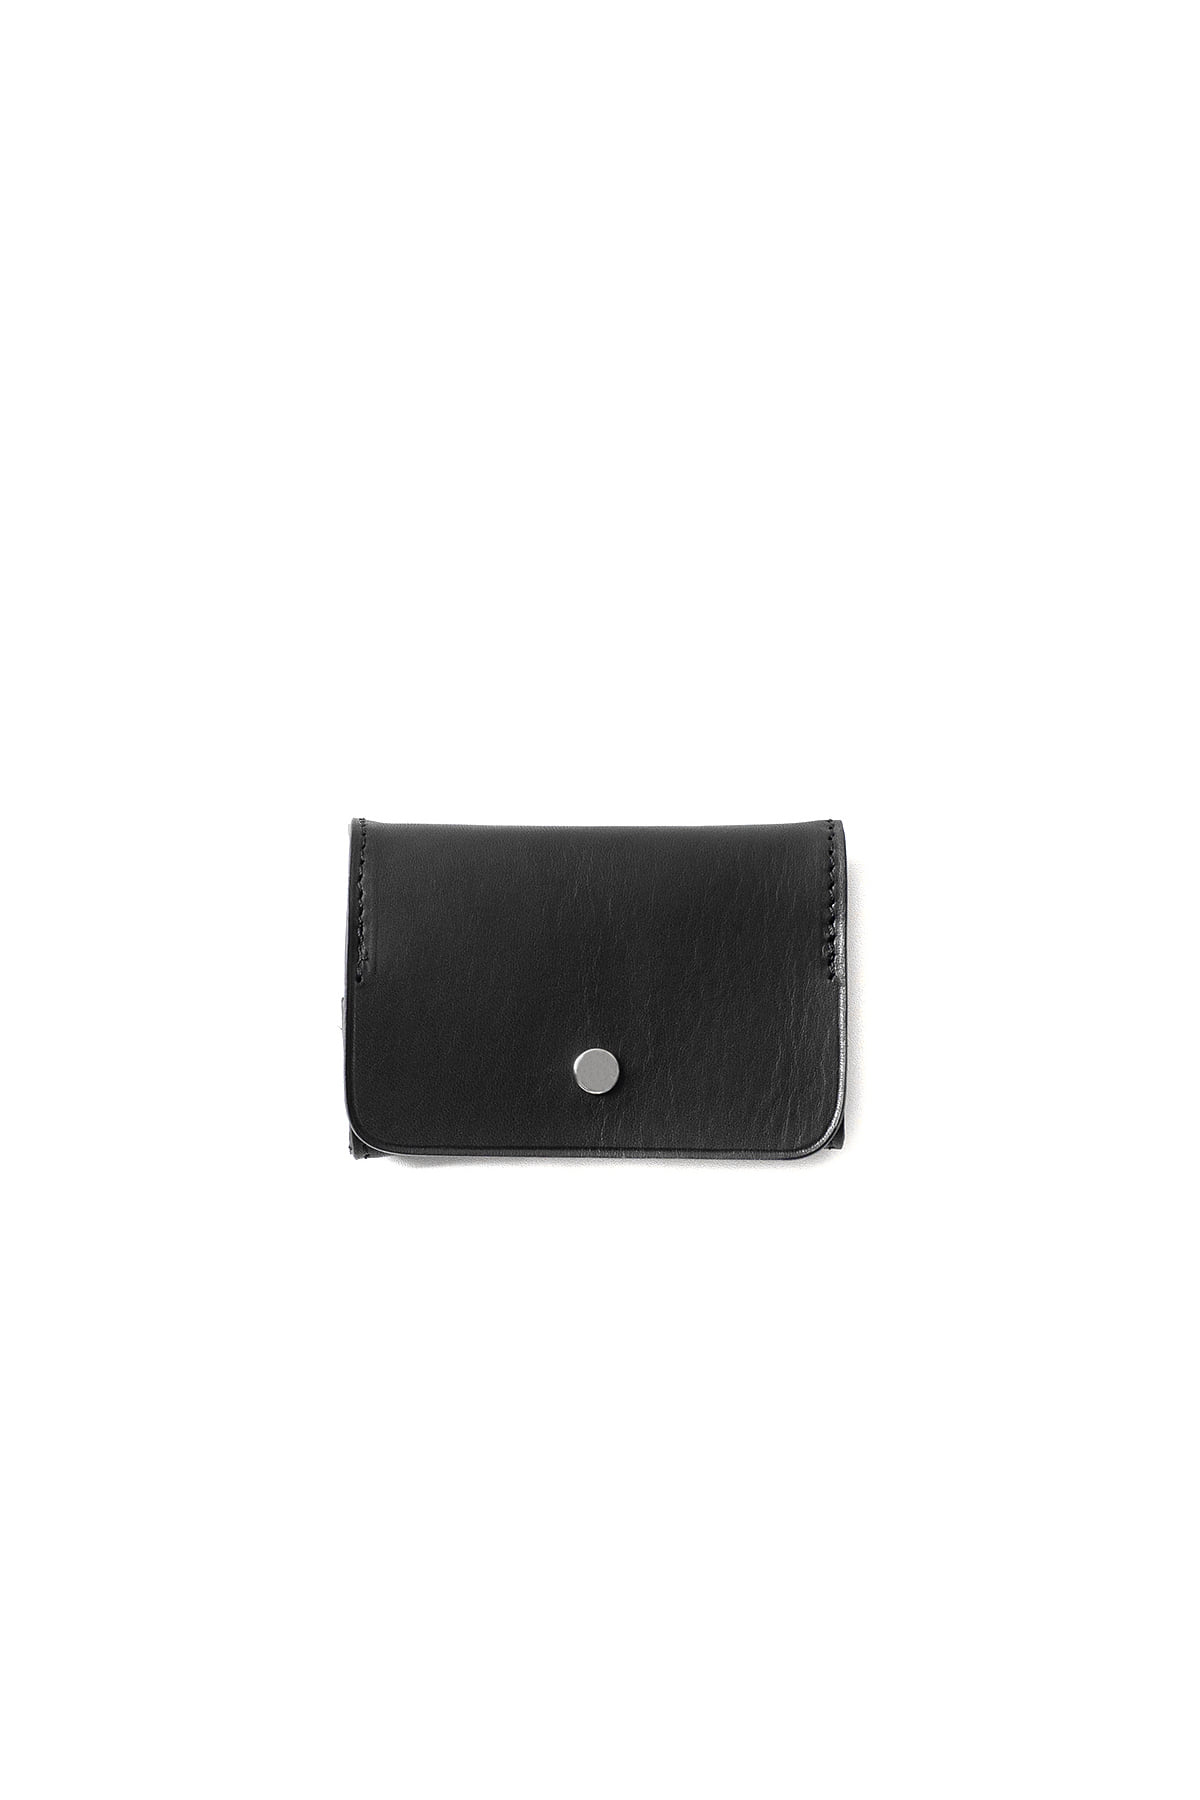 STEVE MONO : 09/9 Classic Coins Holder (Black)